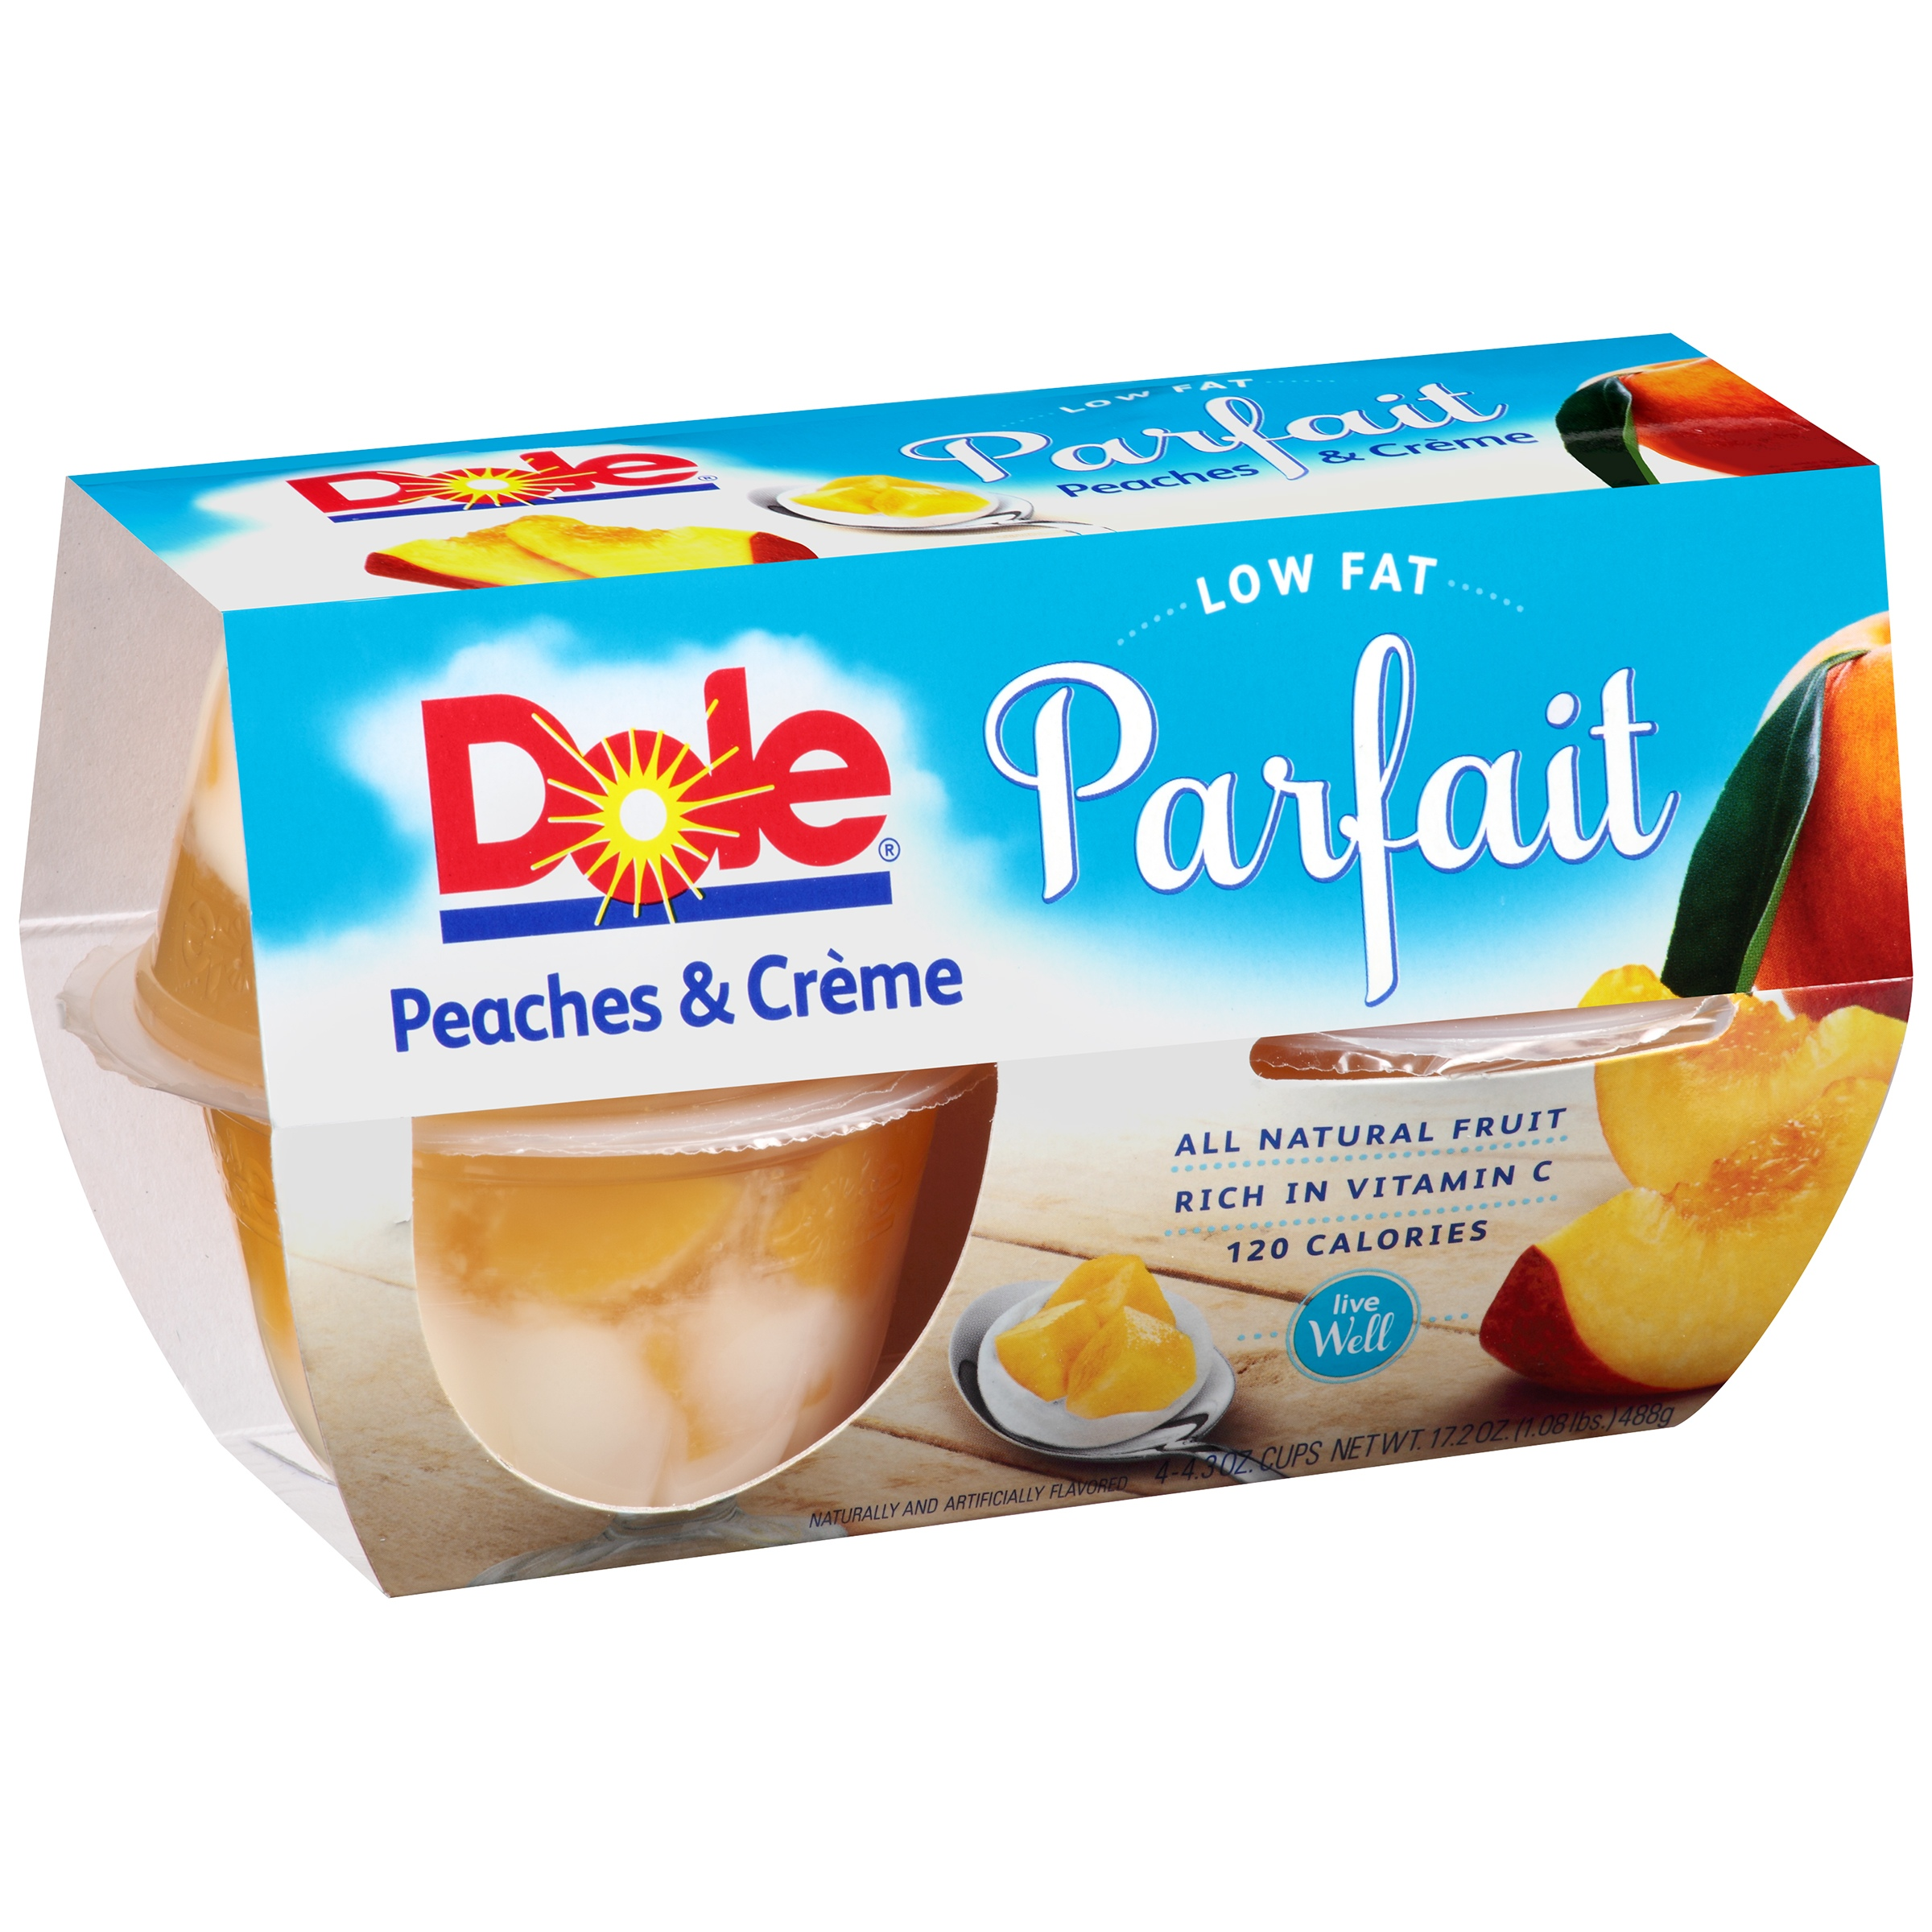 Dole Parfait Peaches & Cr��me, 4.3 oz, 4 count